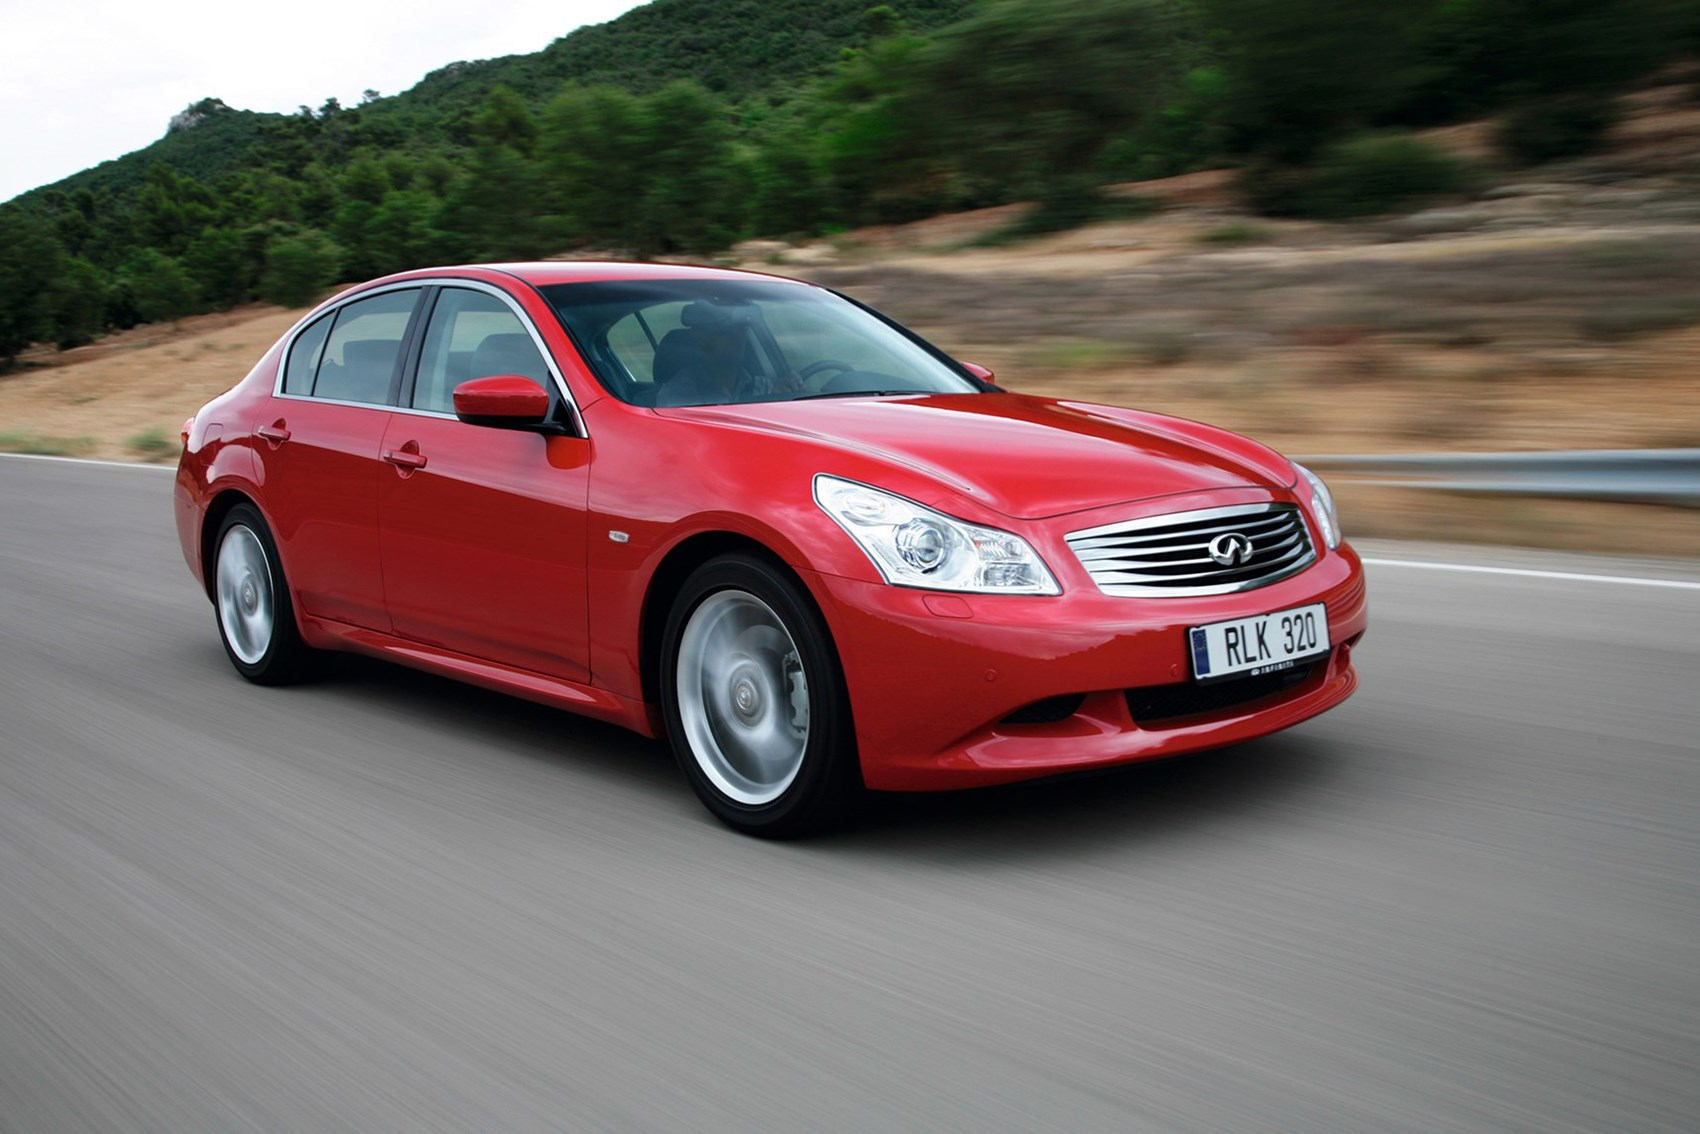 Cars For Less >> The Best Used Luxury Cars For Less Than 10k Parkers